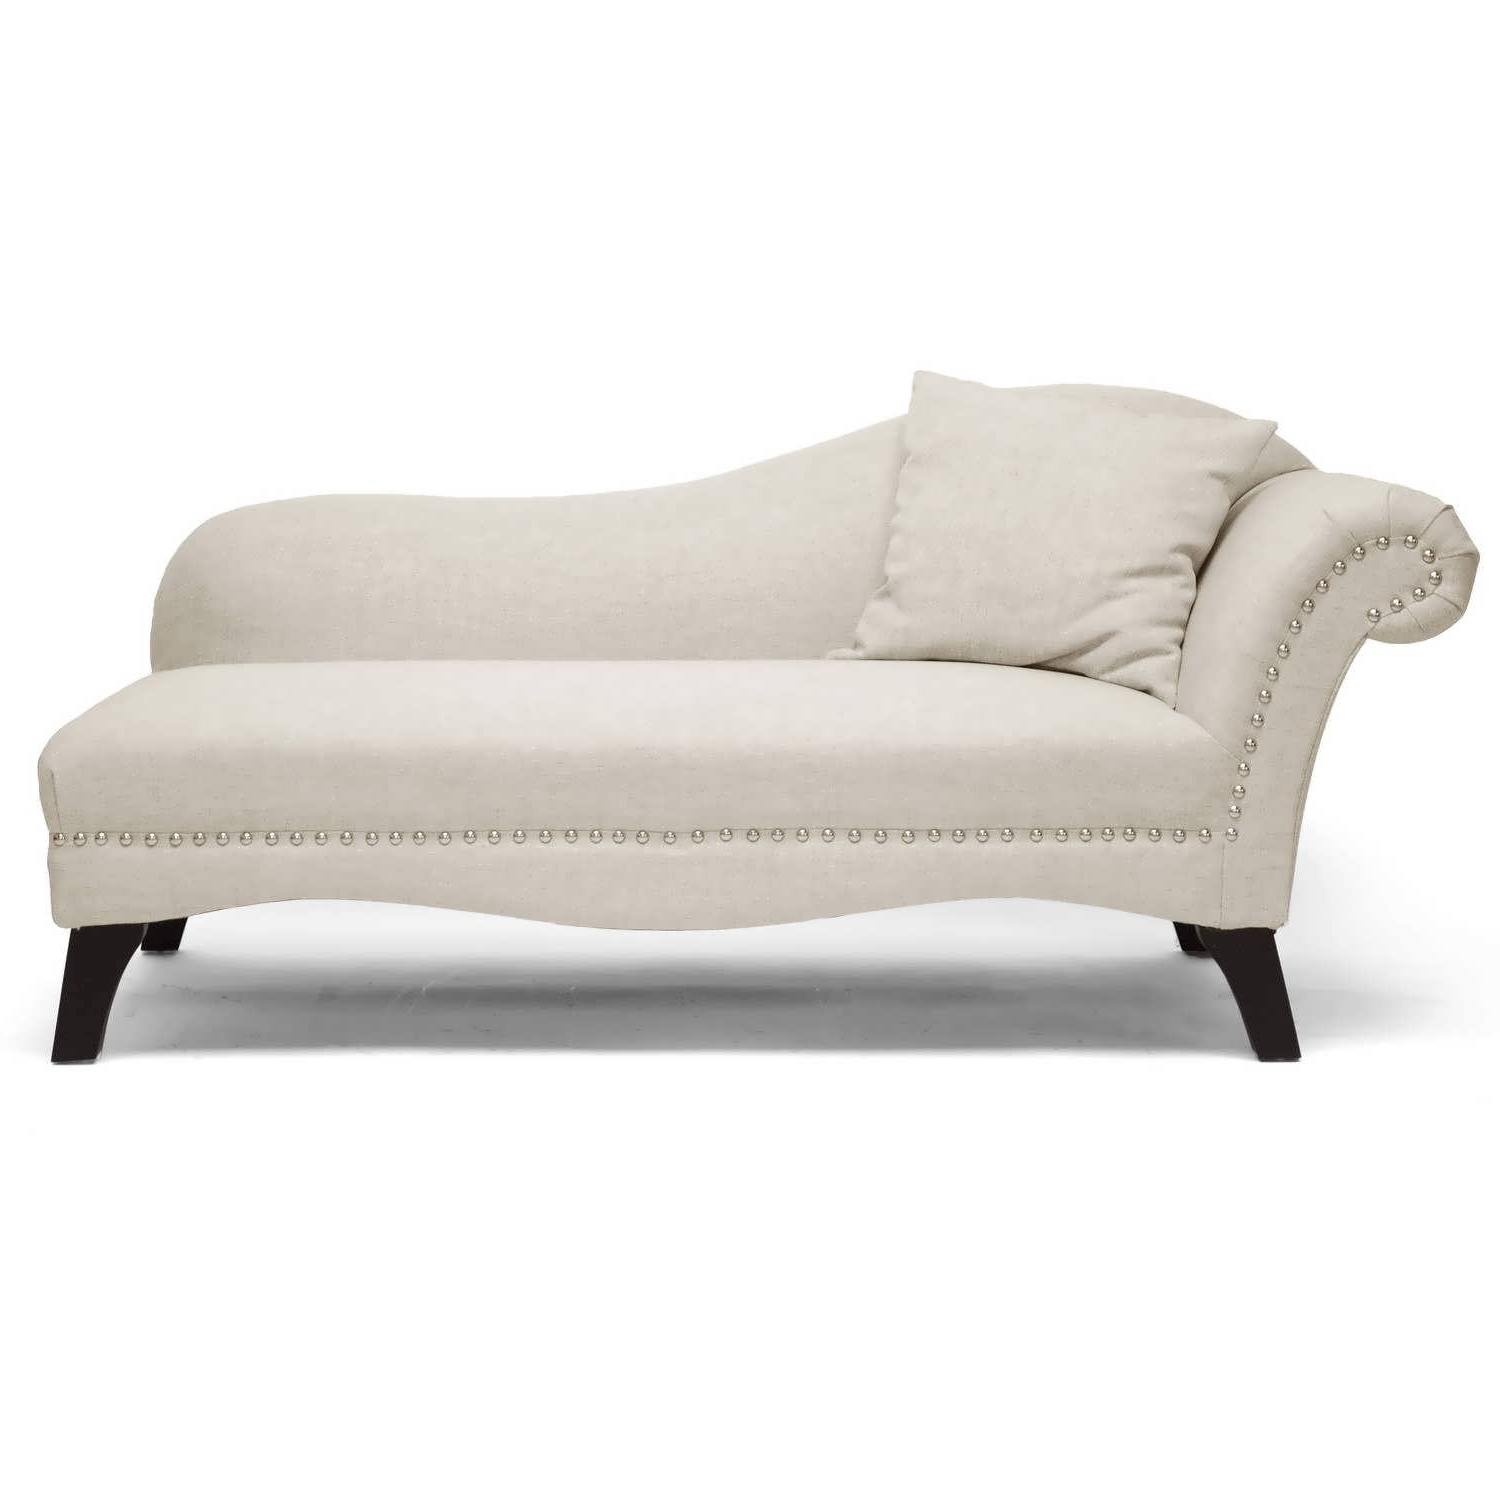 Most Recently Released Chaise Couches Inside Sofa : Chaise Sofa Small Sectional Grey Couch Couches For Sale (View 11 of 15)